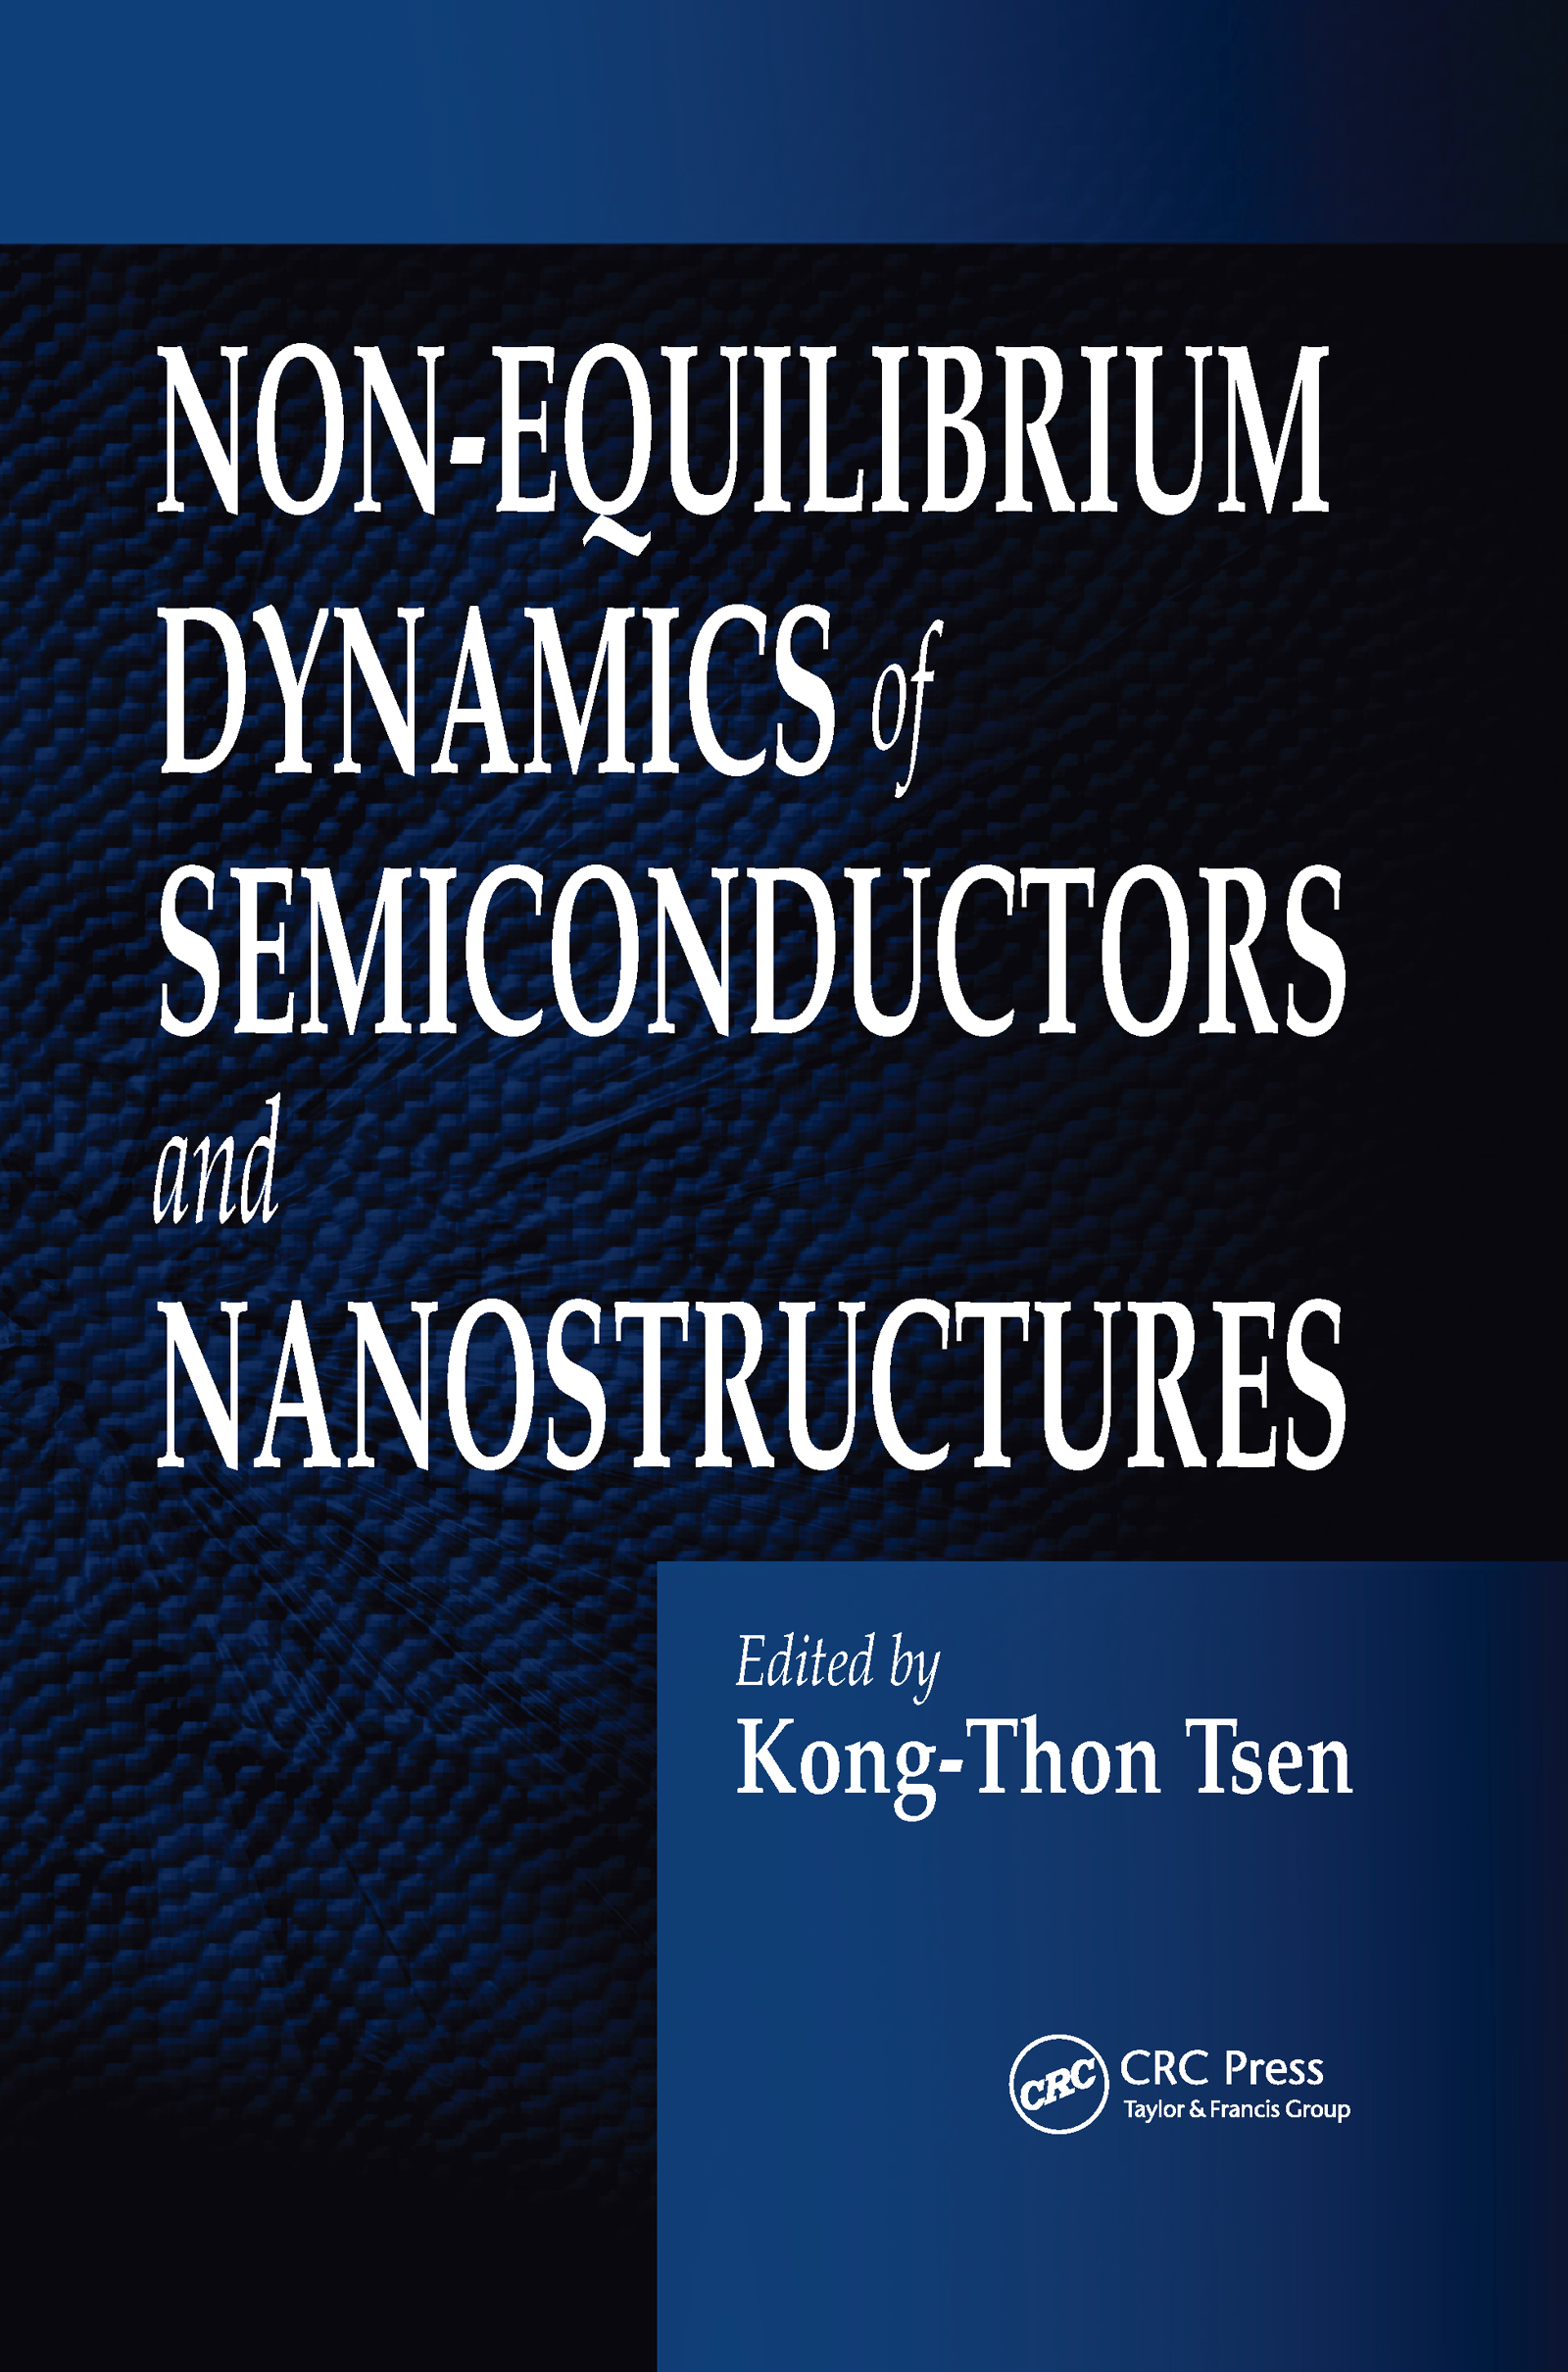 Non-Equilibrium Dynamics of Semiconductors and Nanostructures: 1st Edition (Hardback) book cover